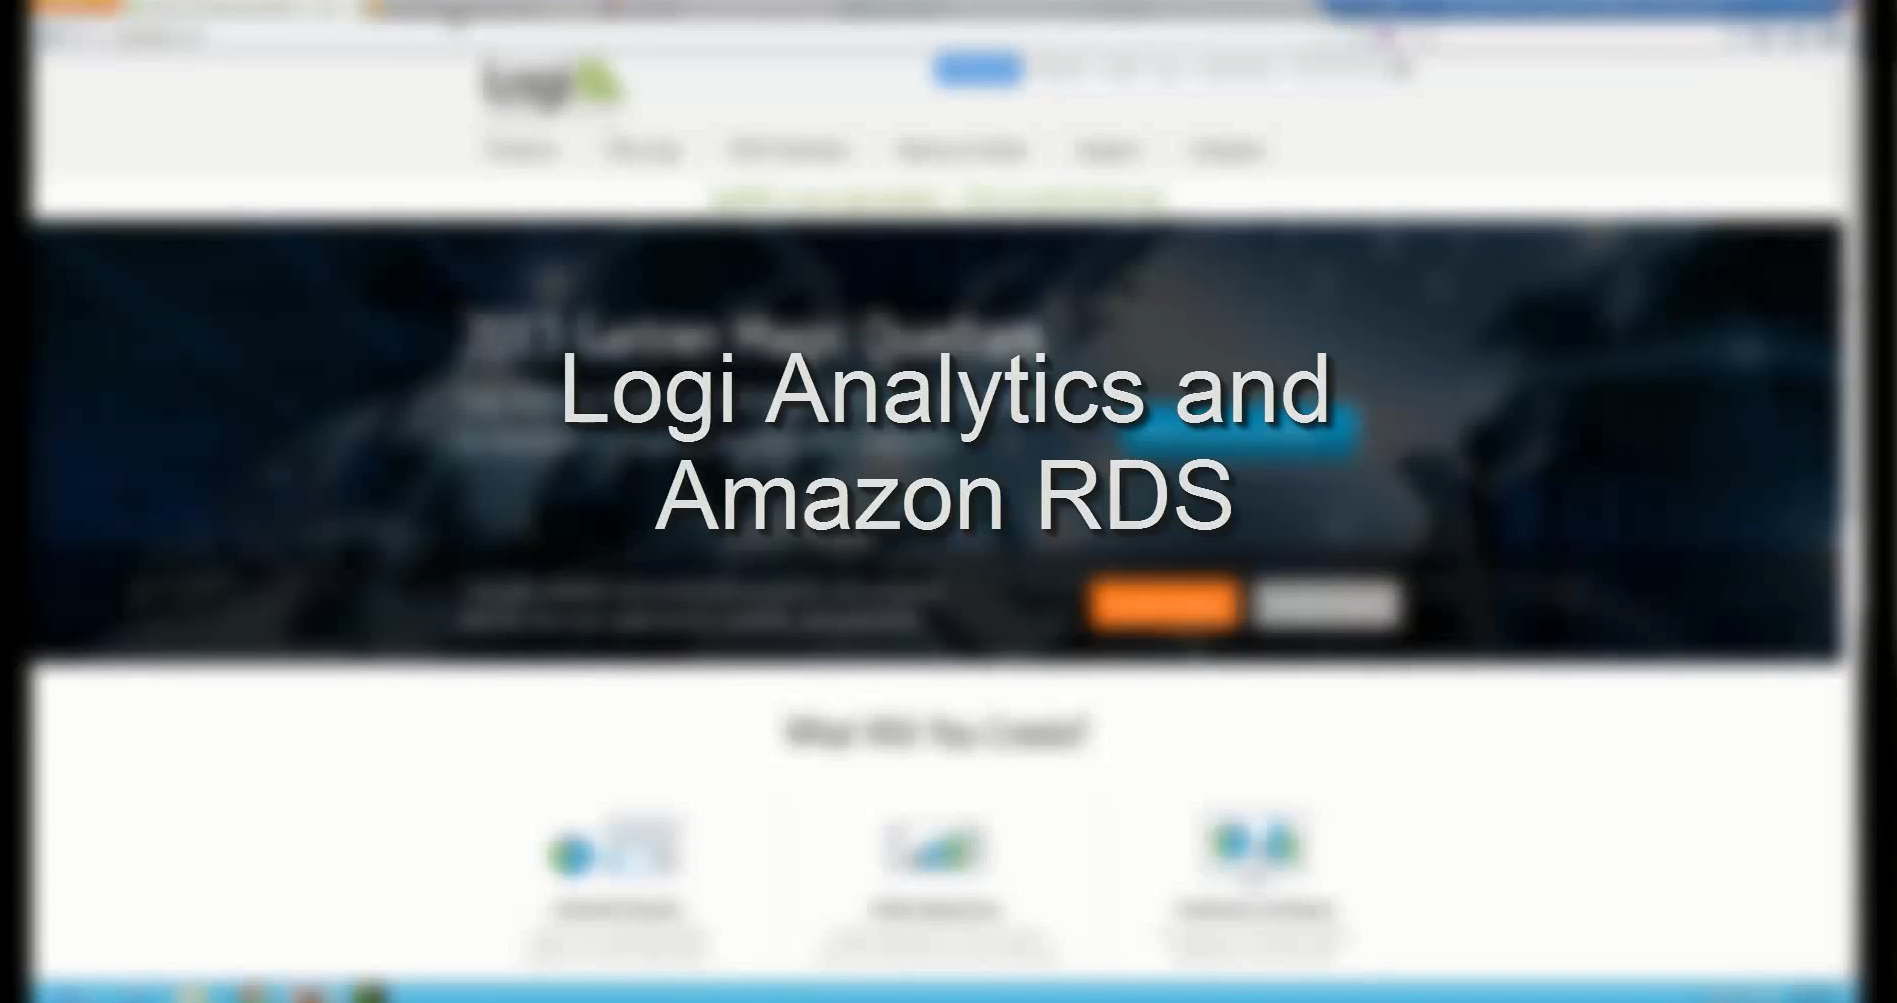 logi_analytics_rds_thumb